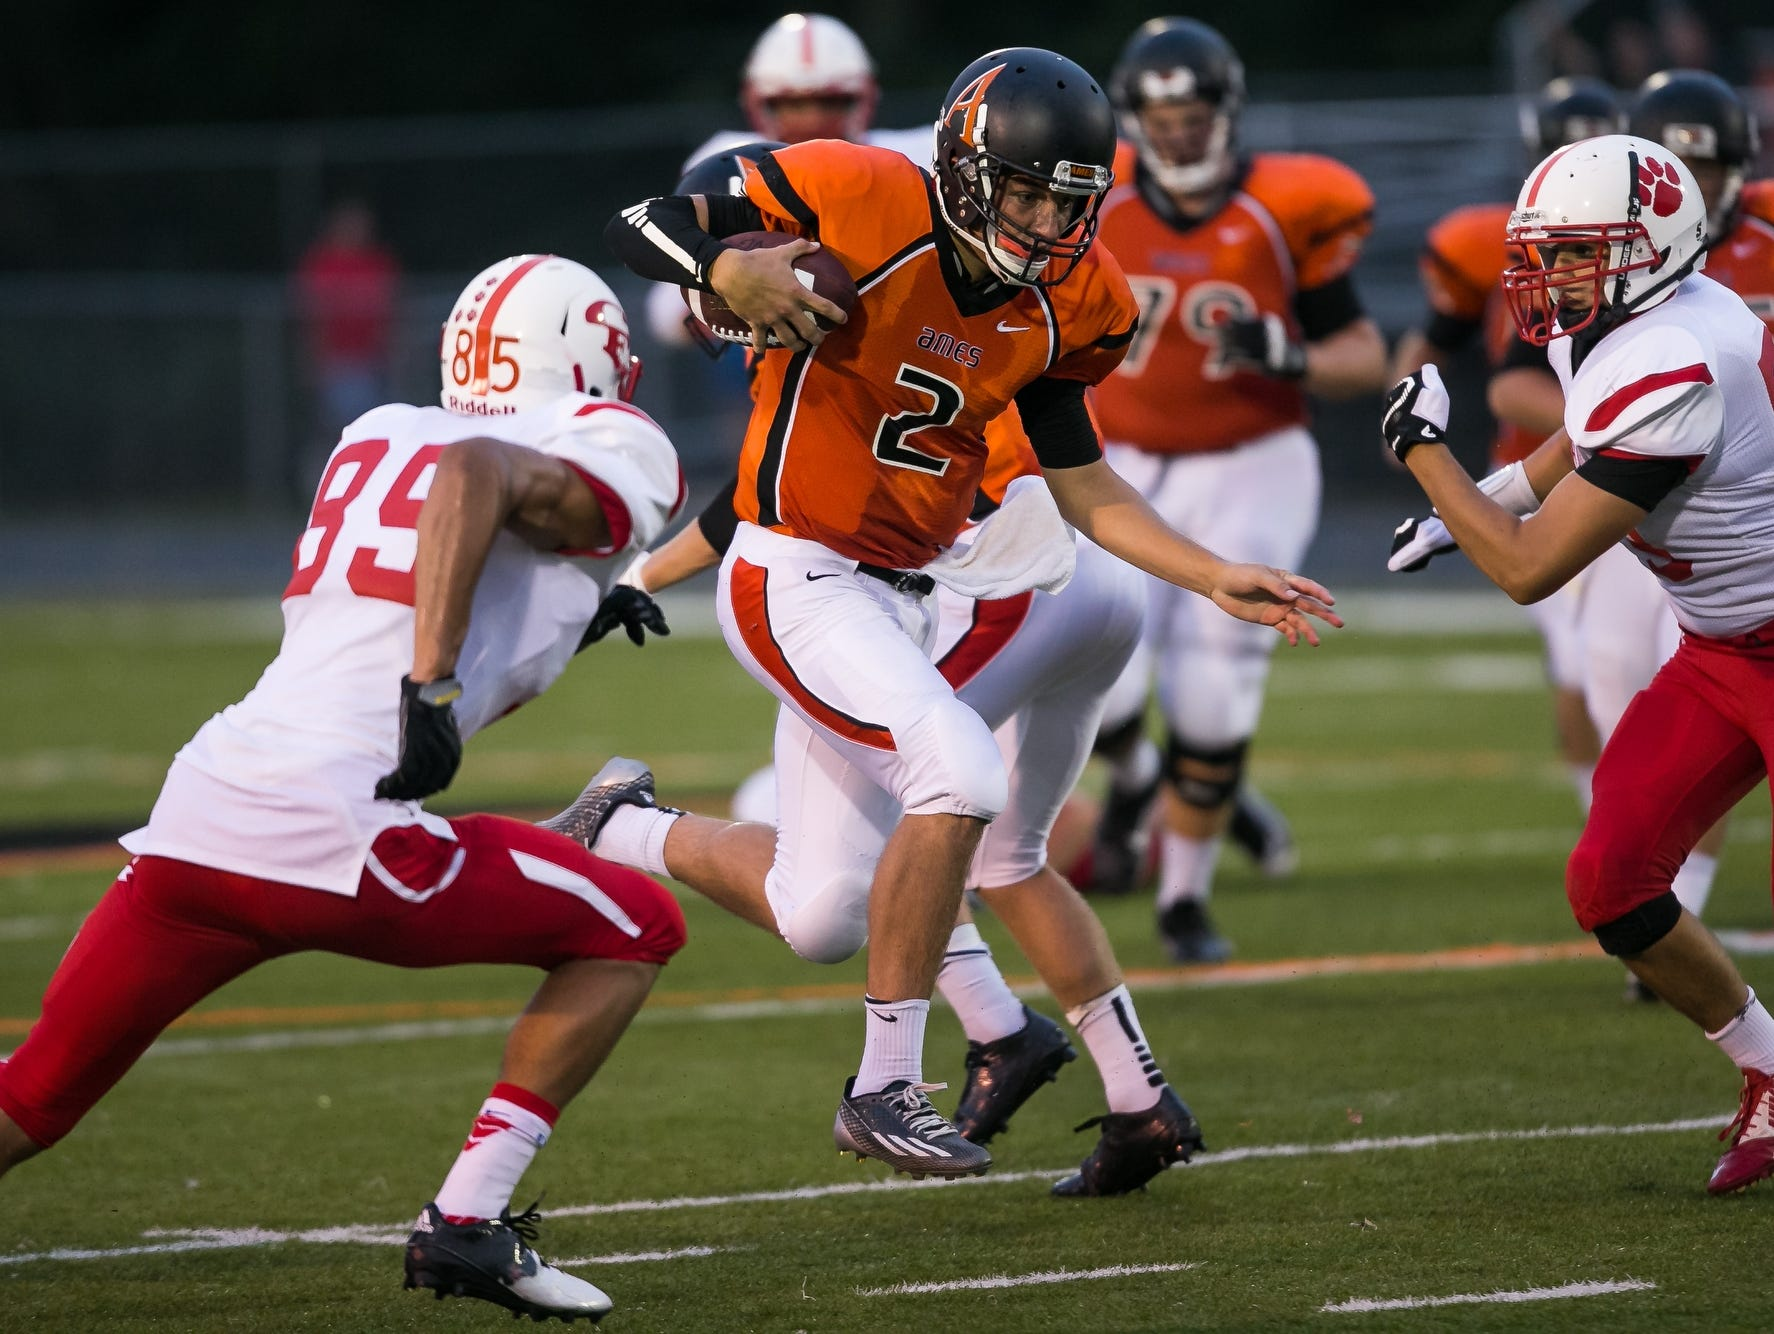 Ames' Ethan Hahn rushes during their game against Cedar Falls at Ames High School on Friday, Sept. 4, 2015.